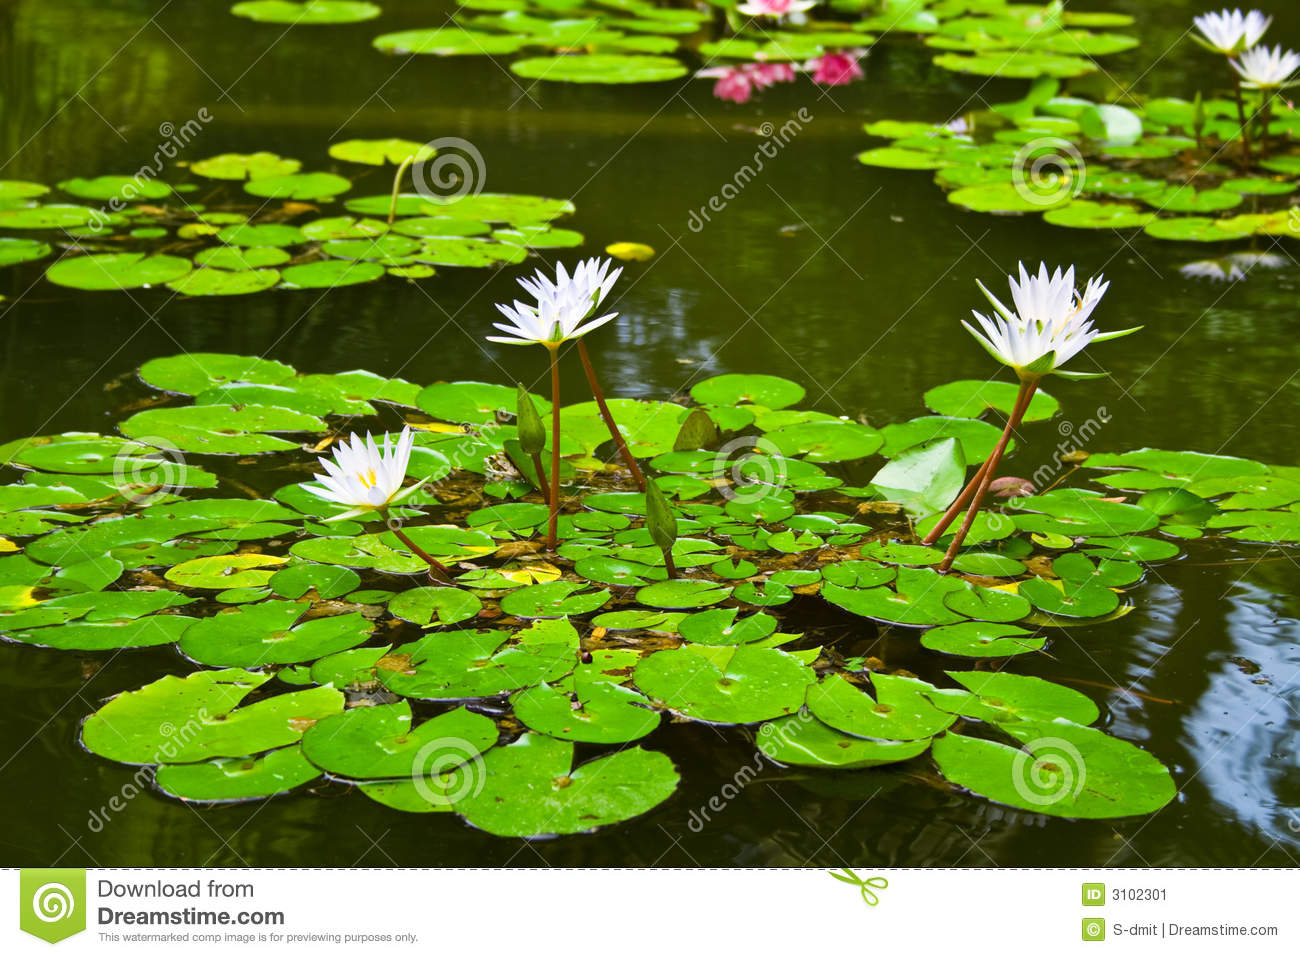 Water Lily In Pond Stock Image   Image  3102301